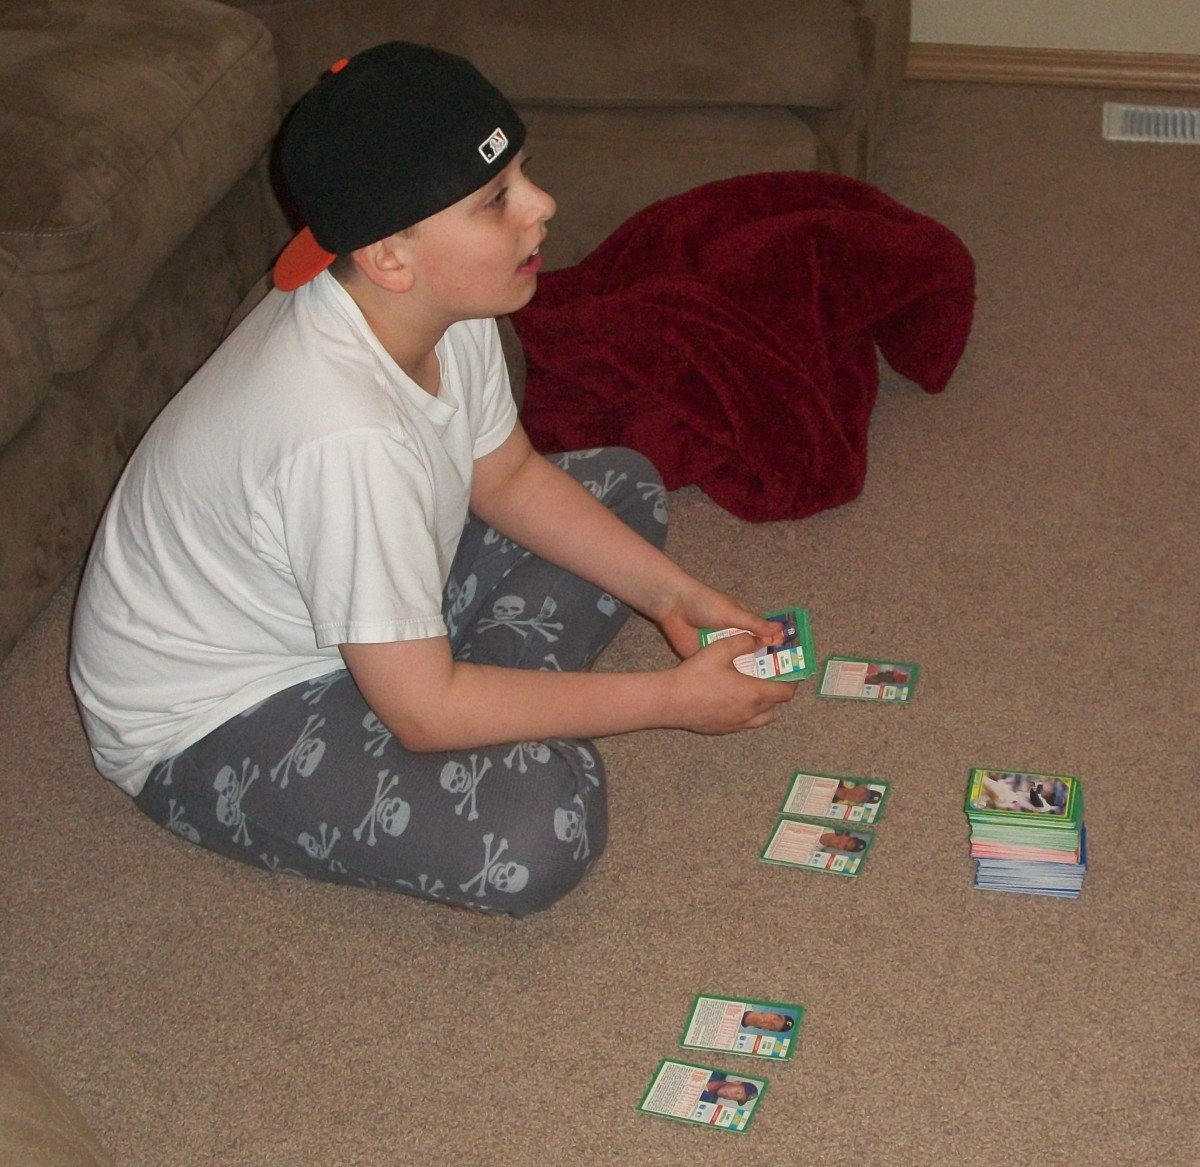 Young boy with Asperger's organizing baseball cards